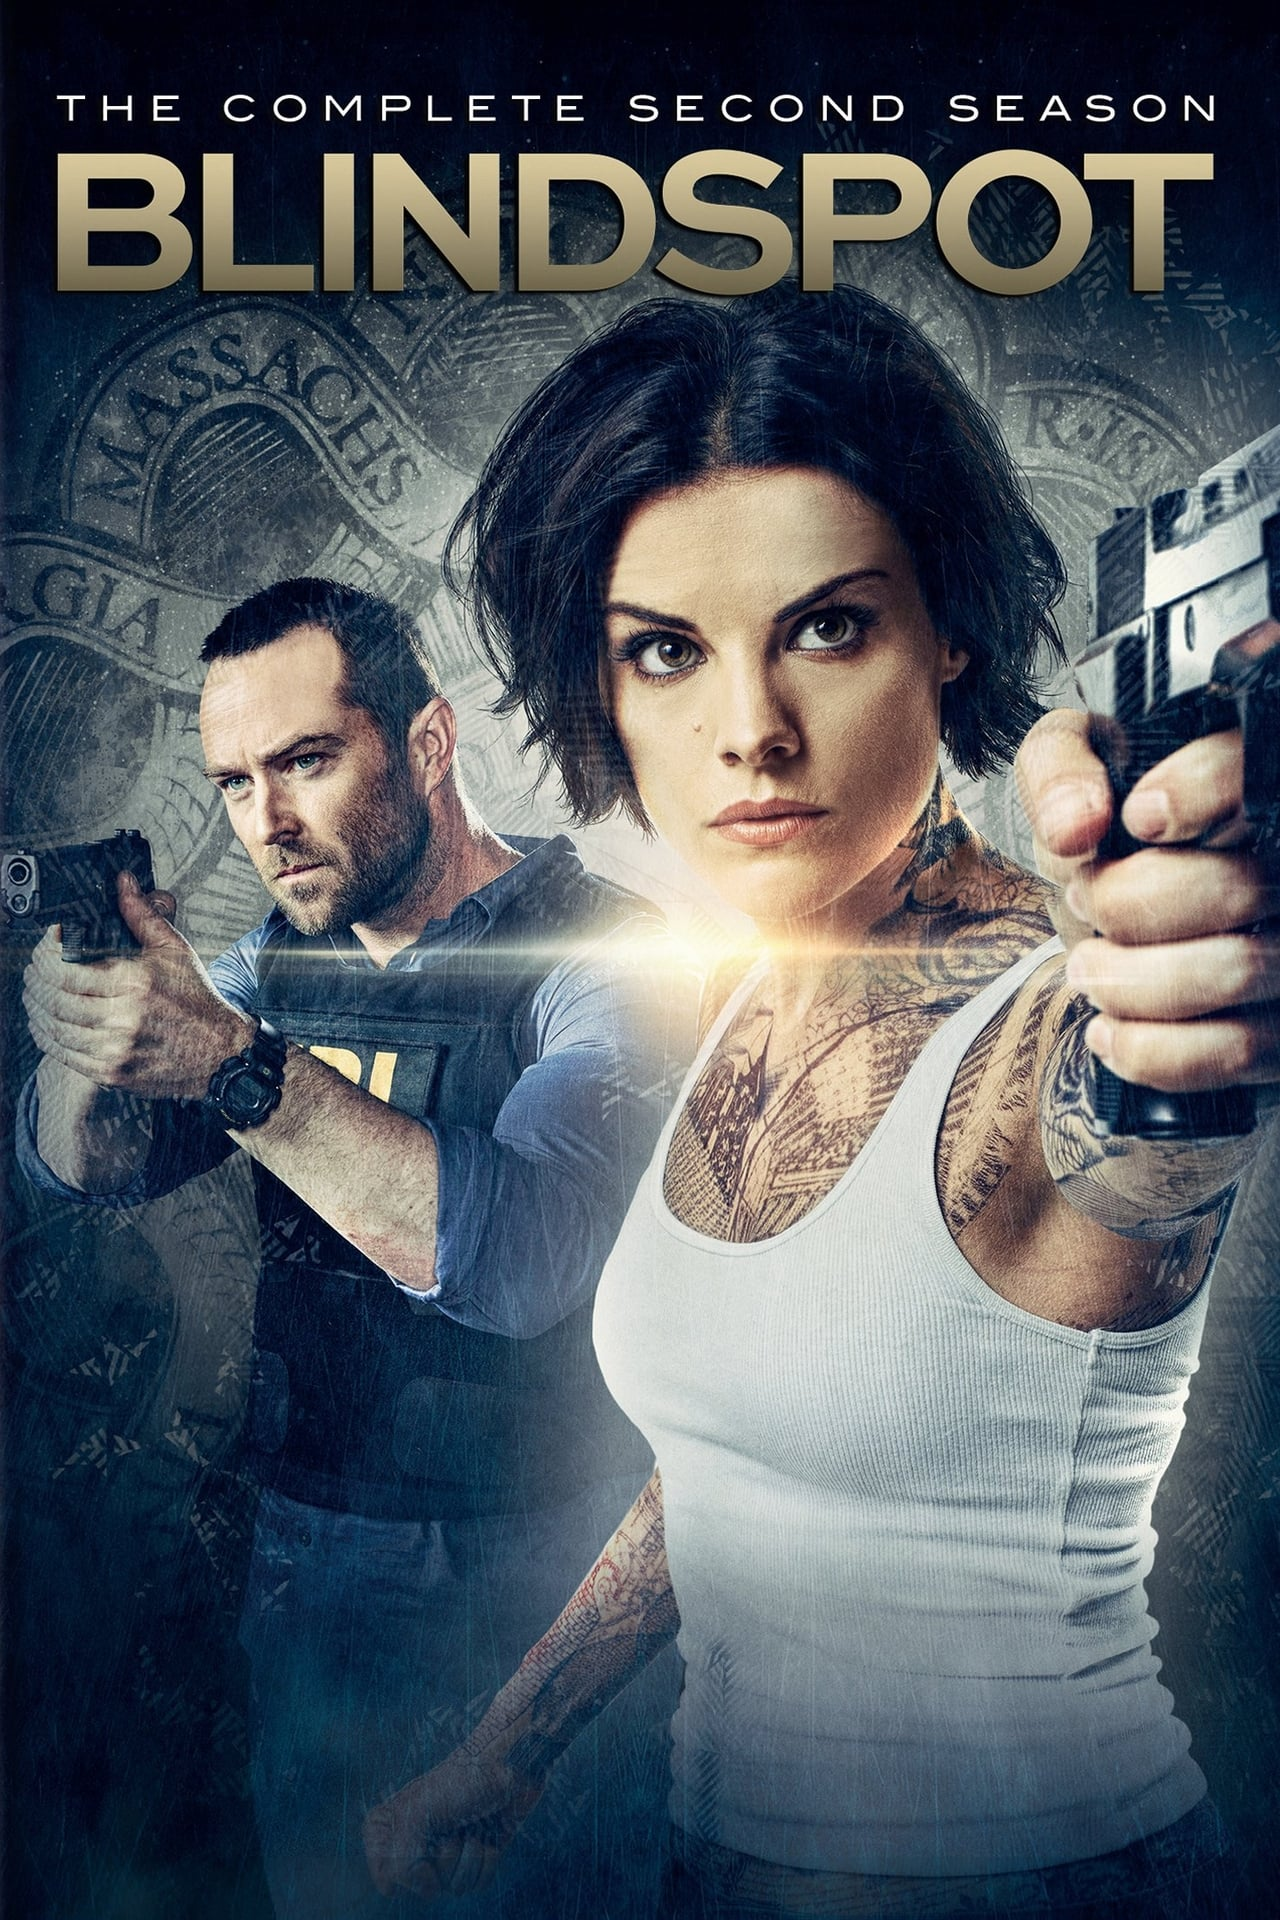 Blindspot Season 2 (2016) putlockers cafe